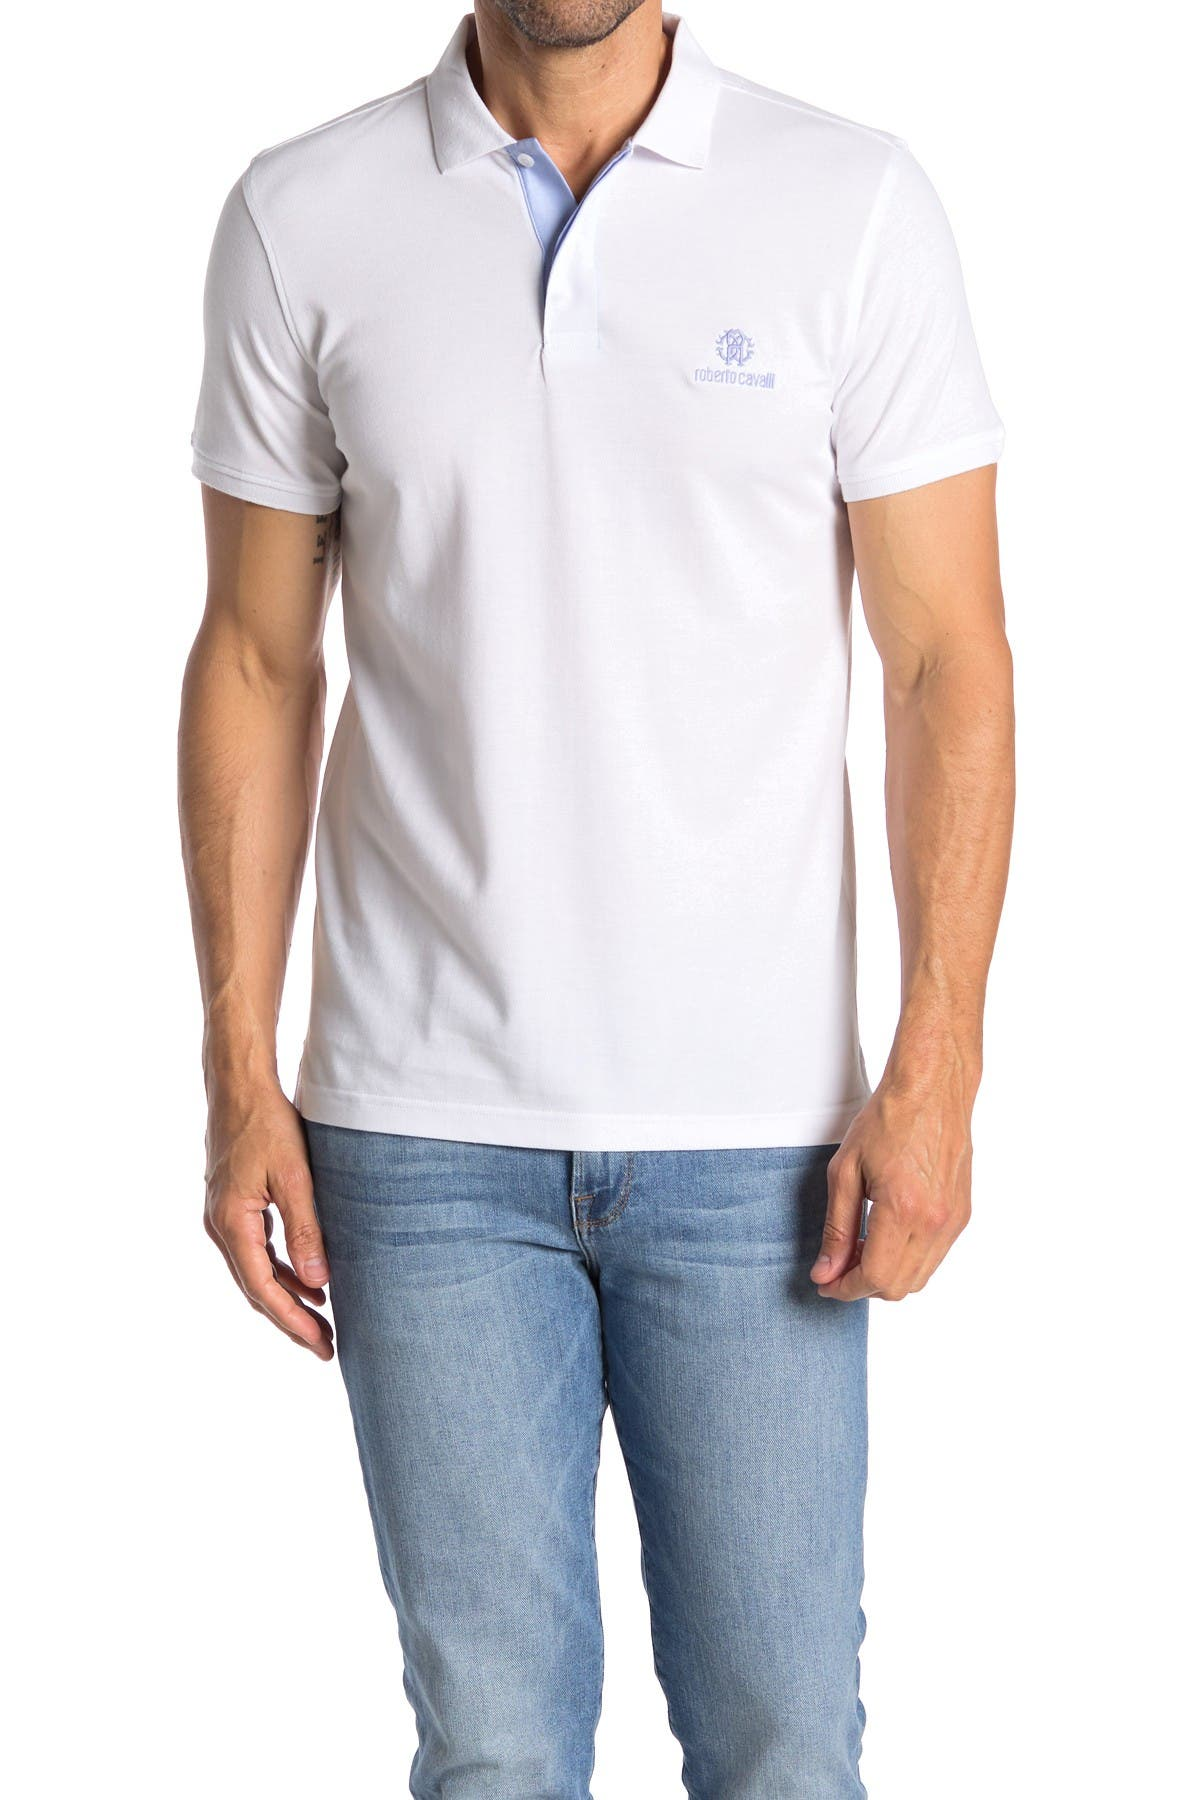 Image of Roberto Cavalli Embroidered Logo Short Sleeve Polo